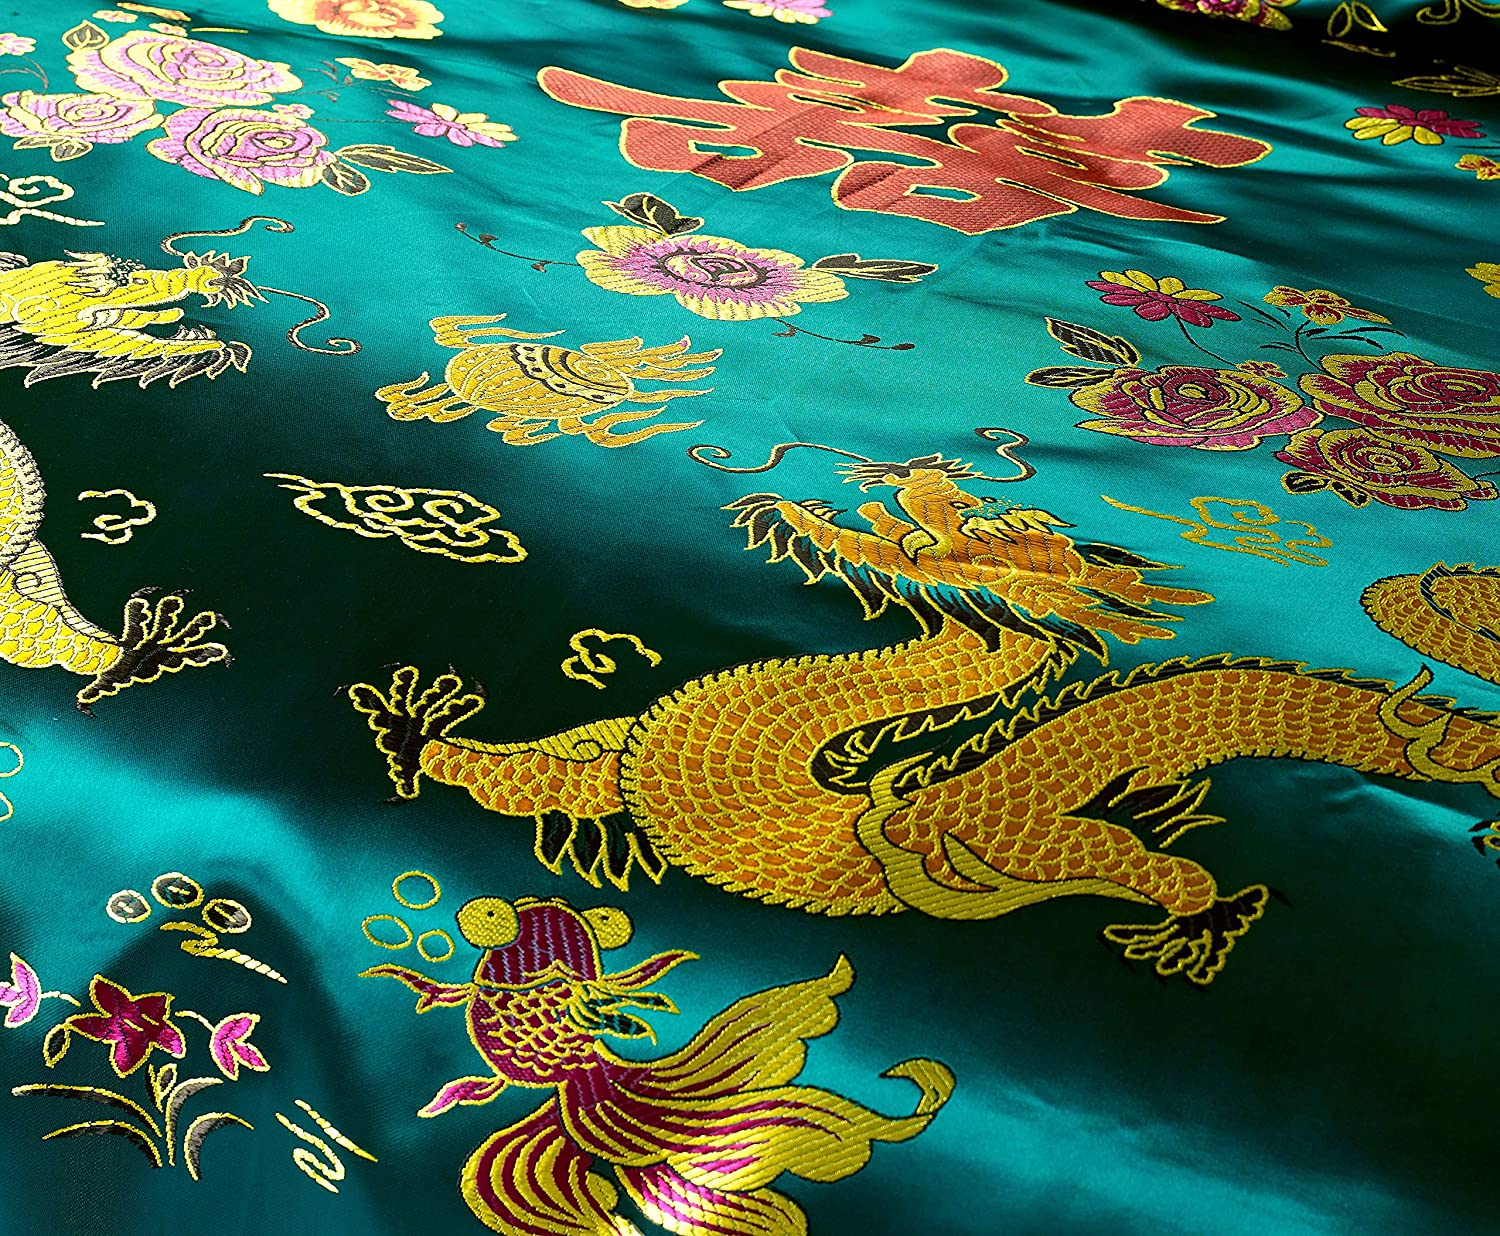 Amazoncom Cliab Chinese Traditional Bedding Asian Bedding Queen - Chinese dragon comforter set